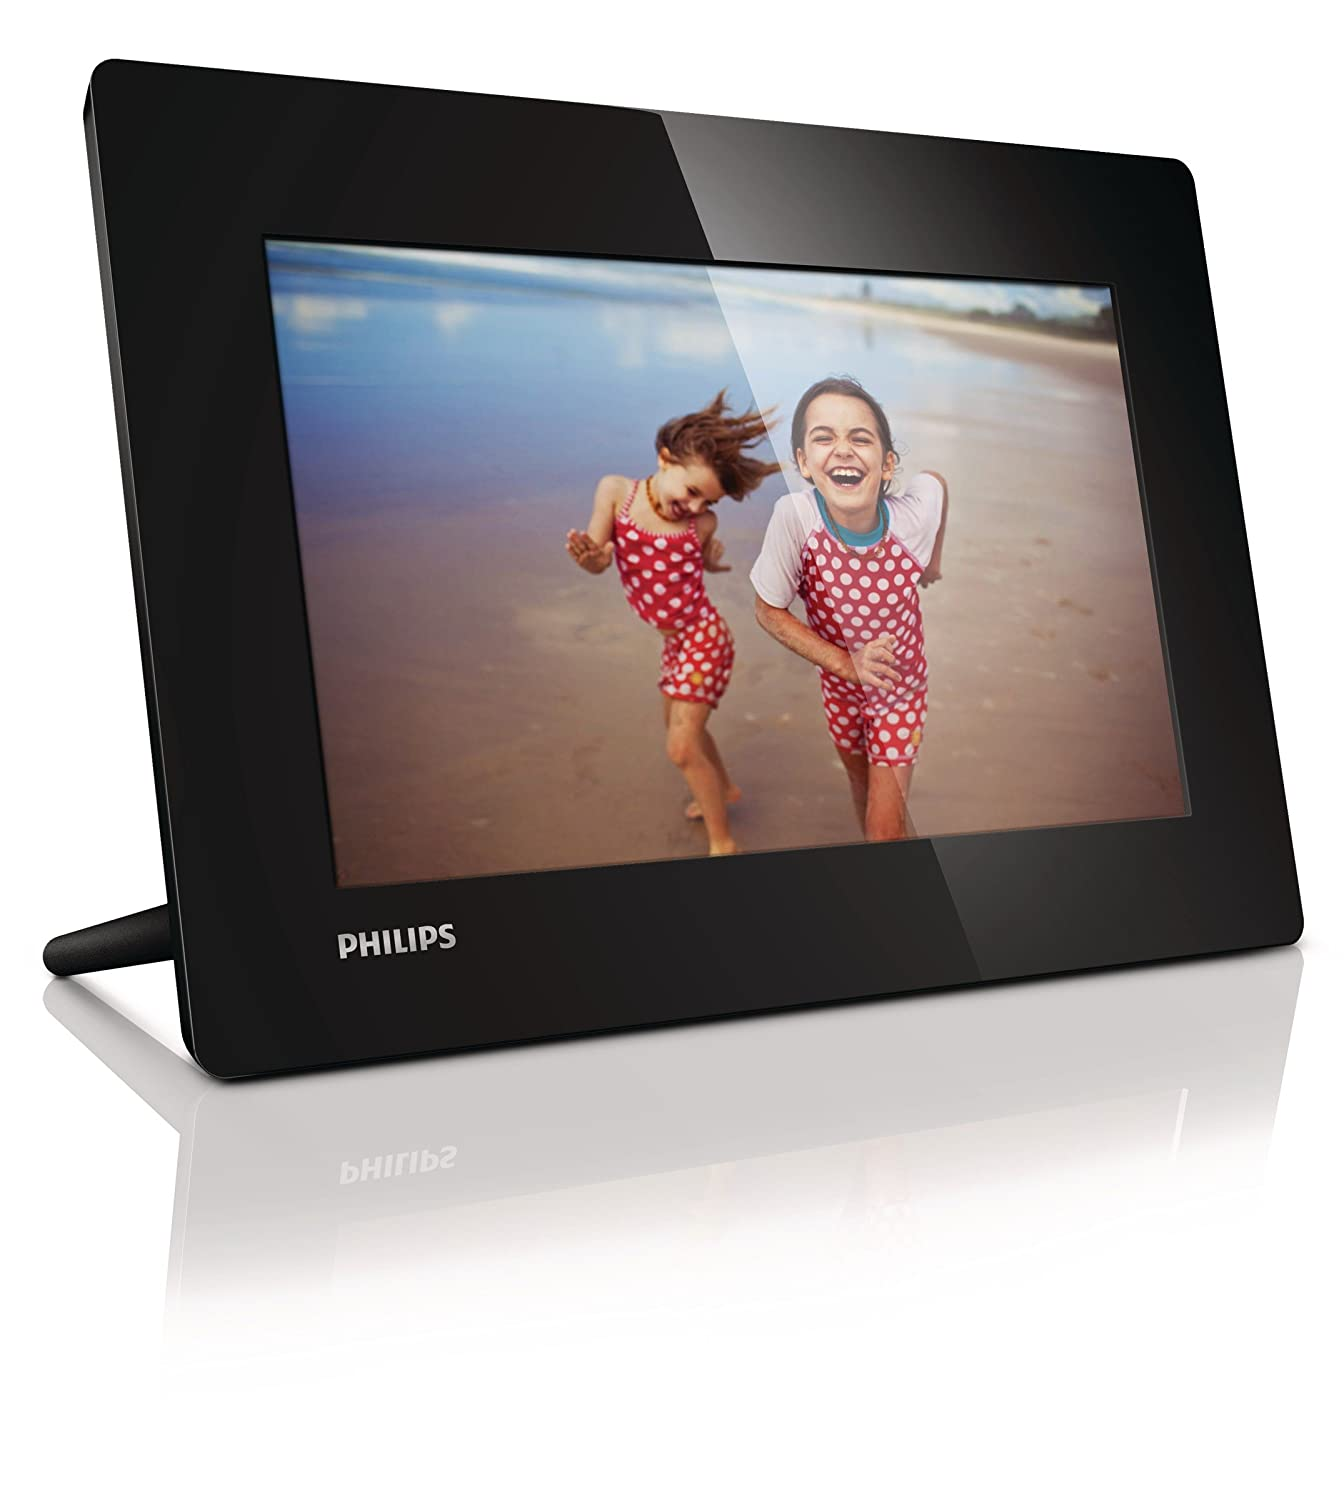 Buy Philips Digital Photo Frame SPF4610/12 (25.4cm/10\